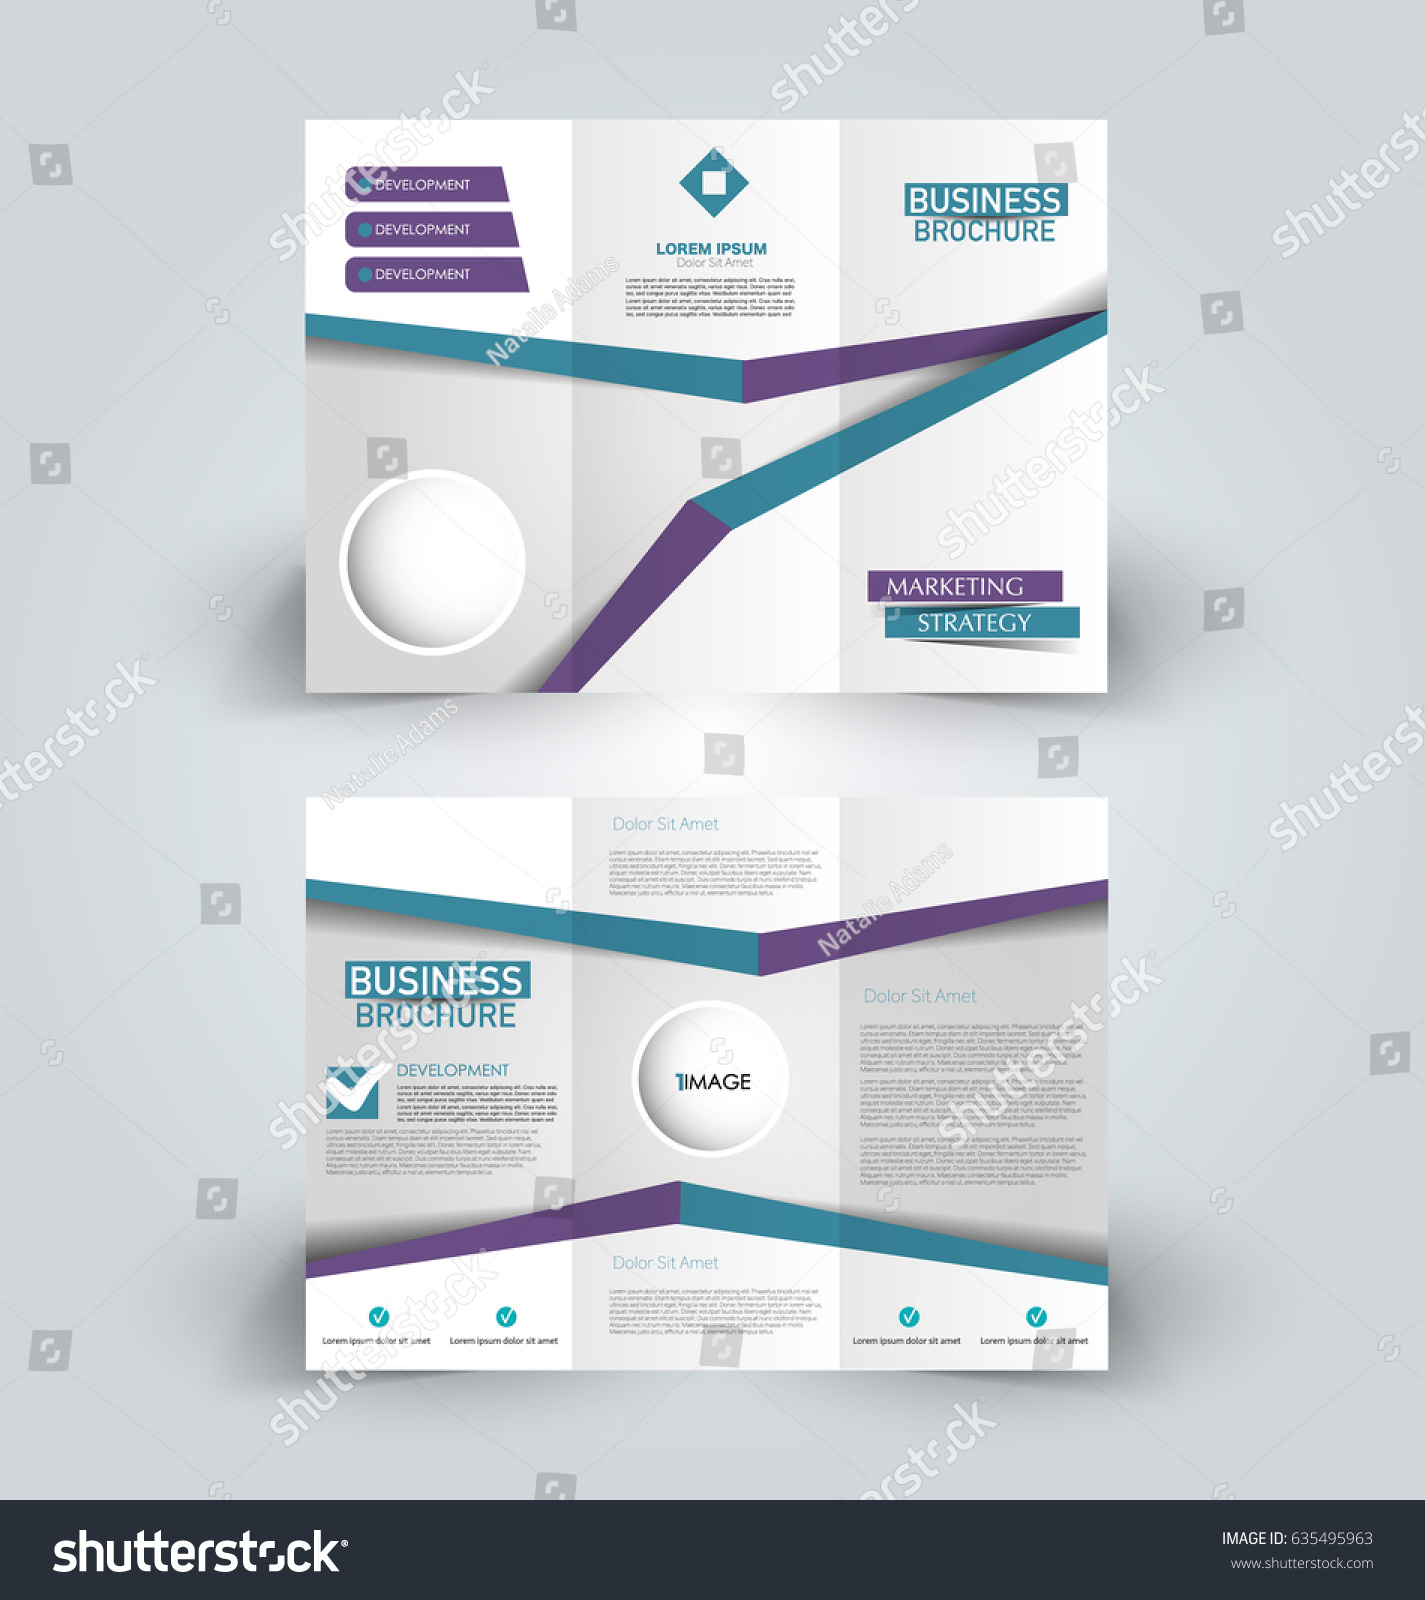 brochure template business trifold flyer creative のベクター画像